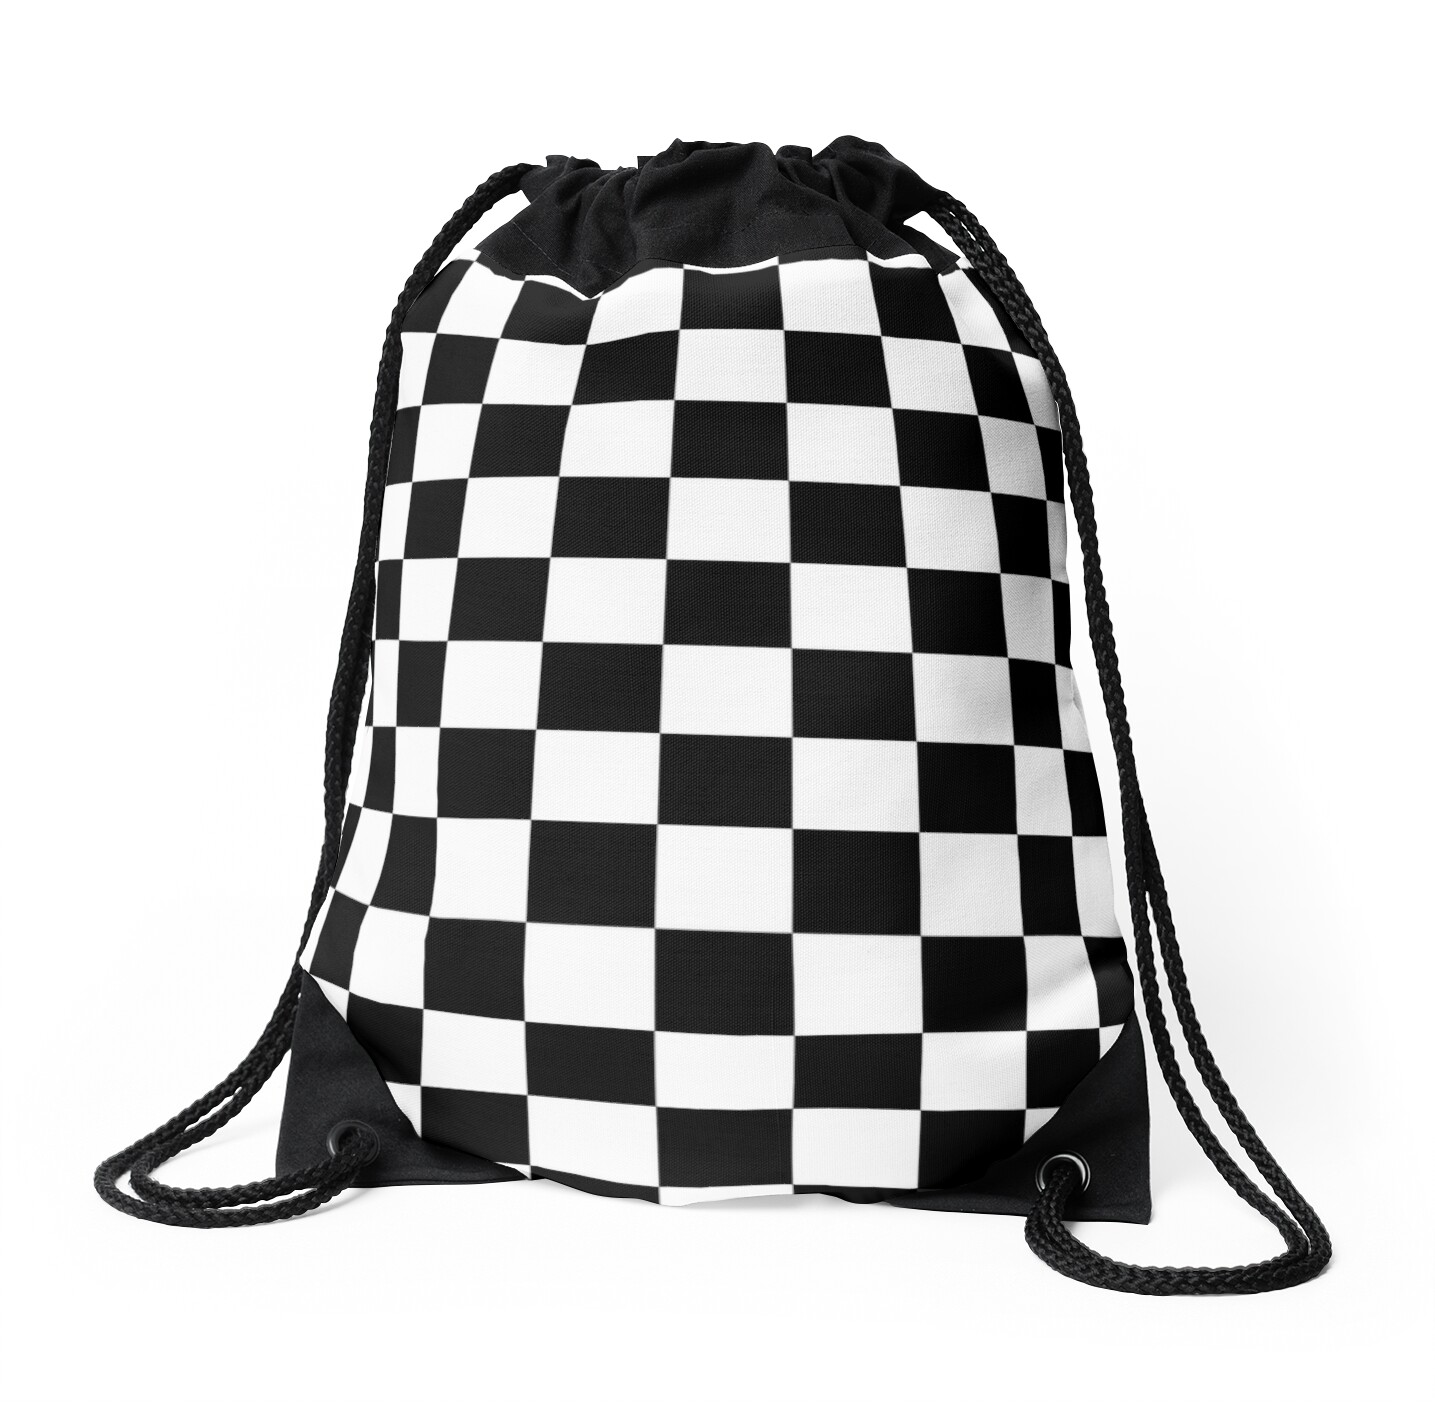 Black and White Check Checkered Flag Motorsports Race Day   Chess ...